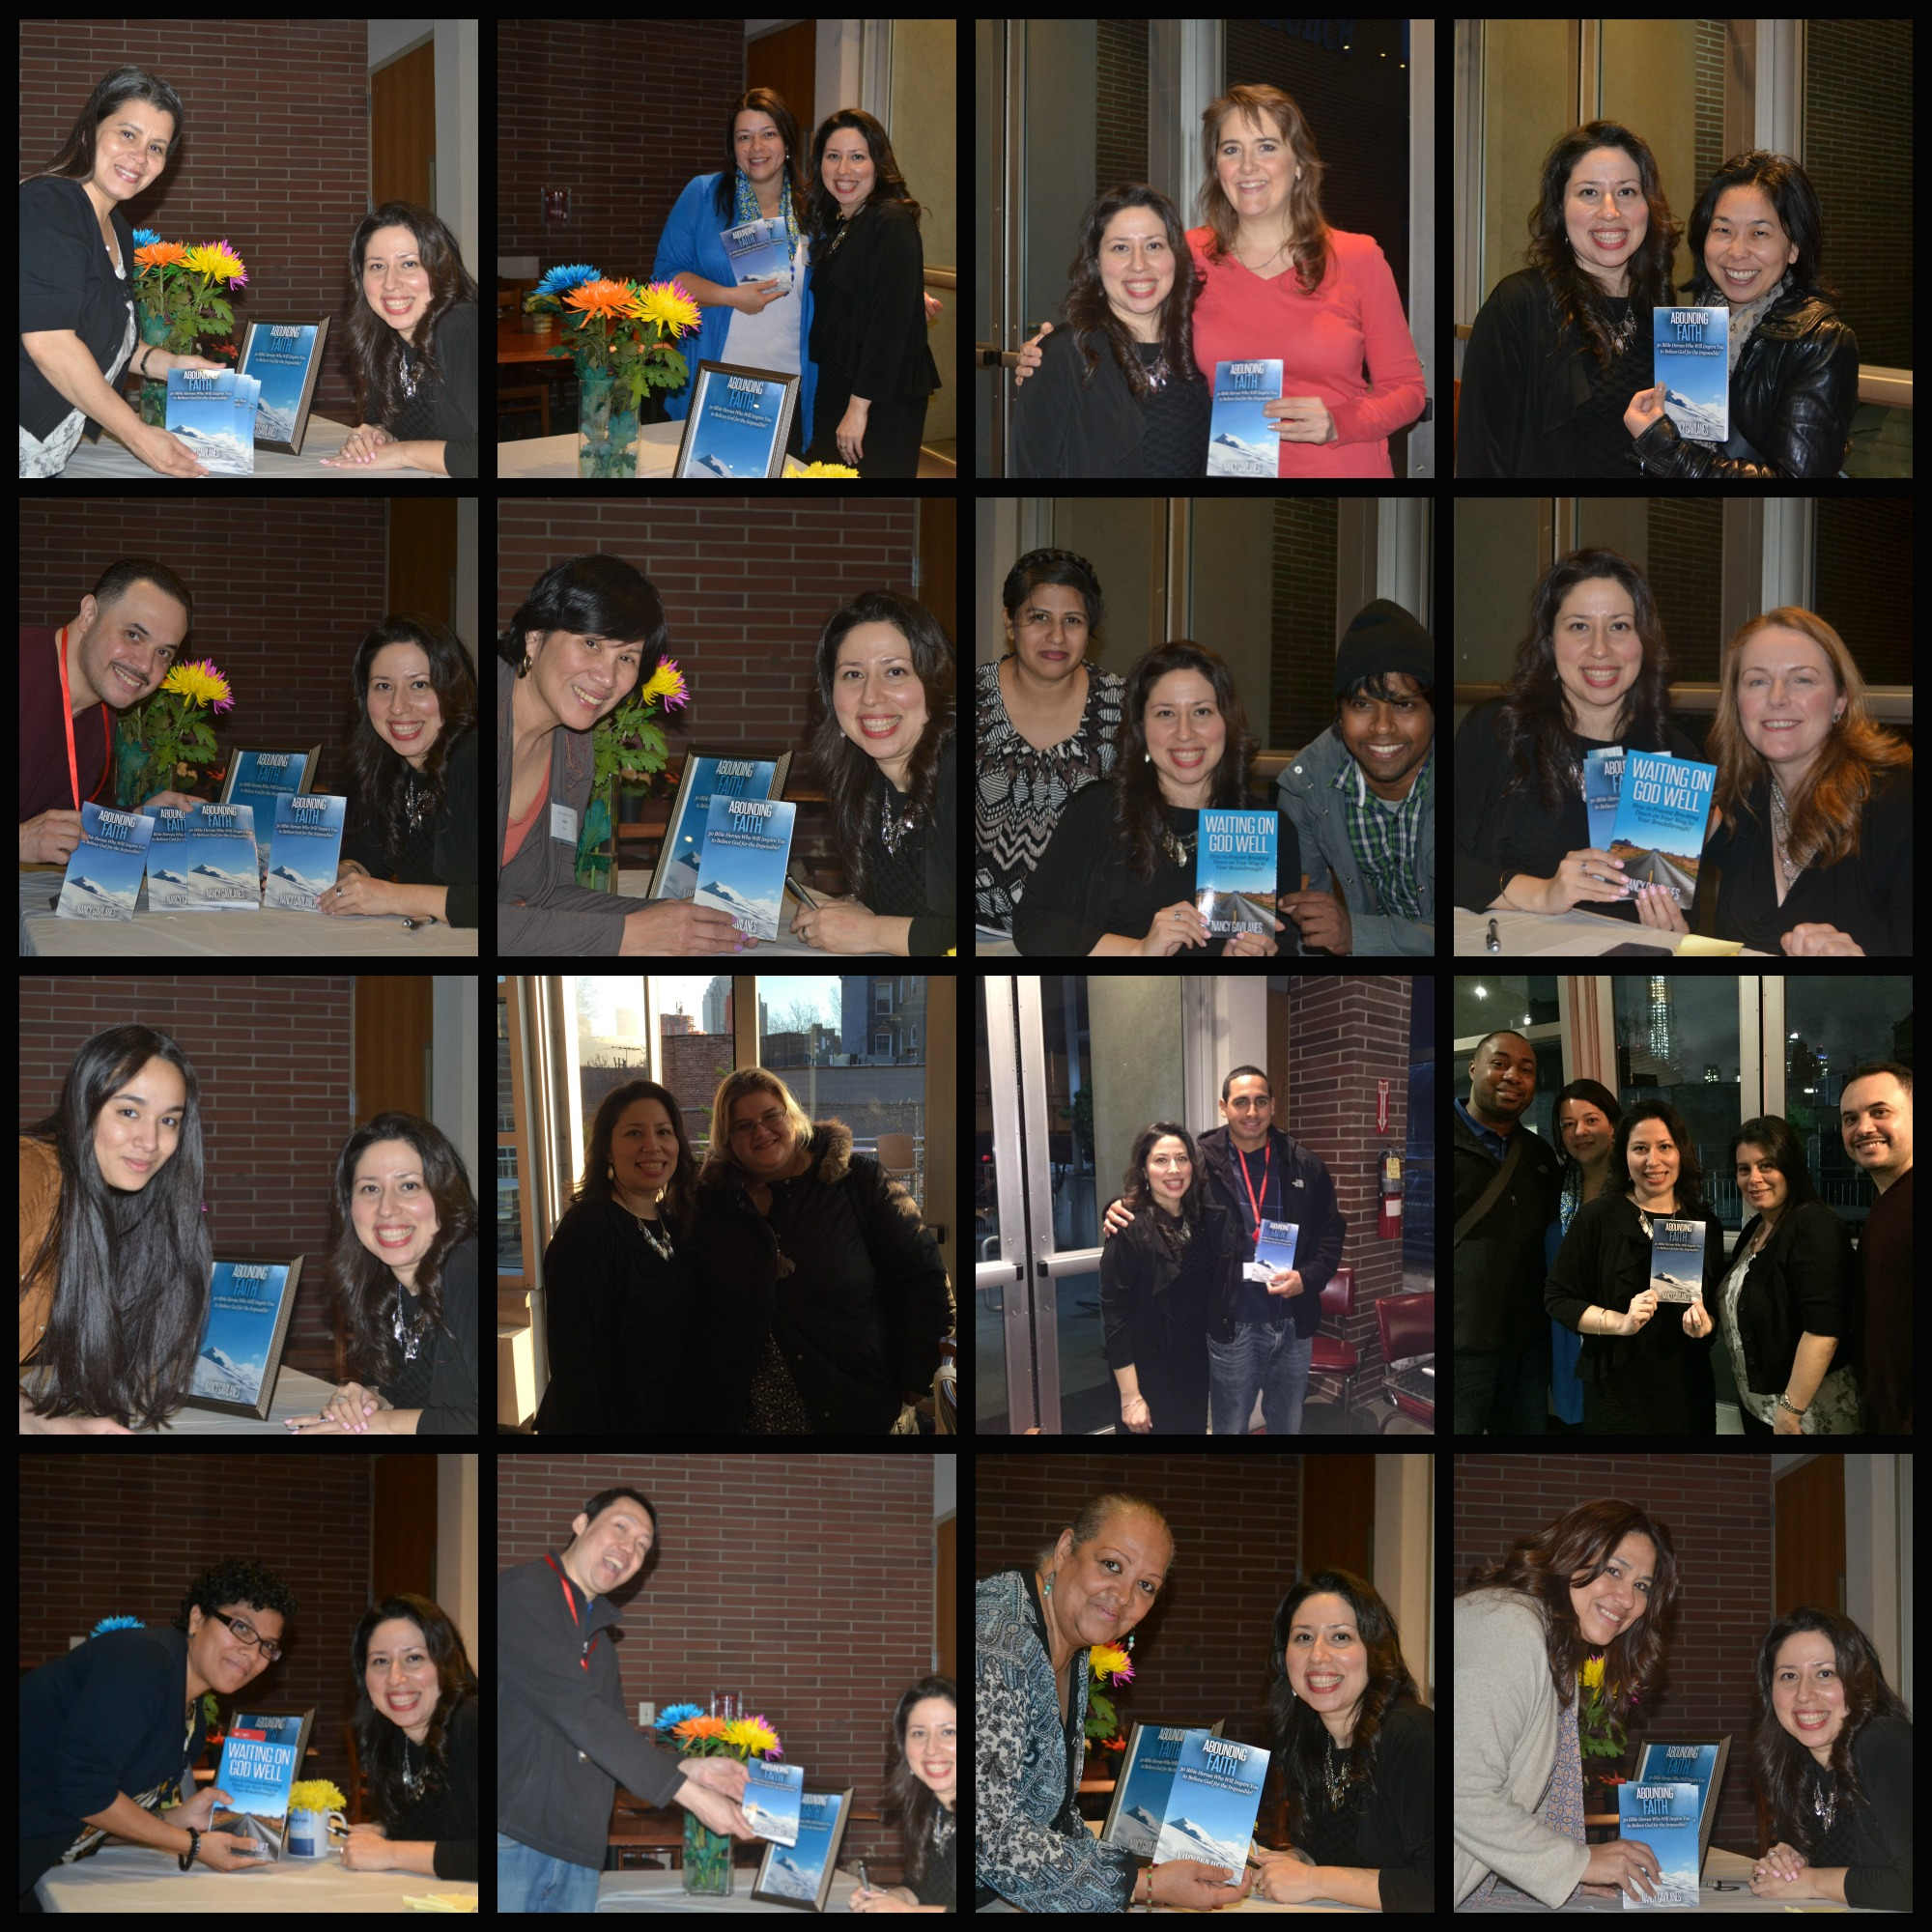 Book 2 Launch collage 4-17-16